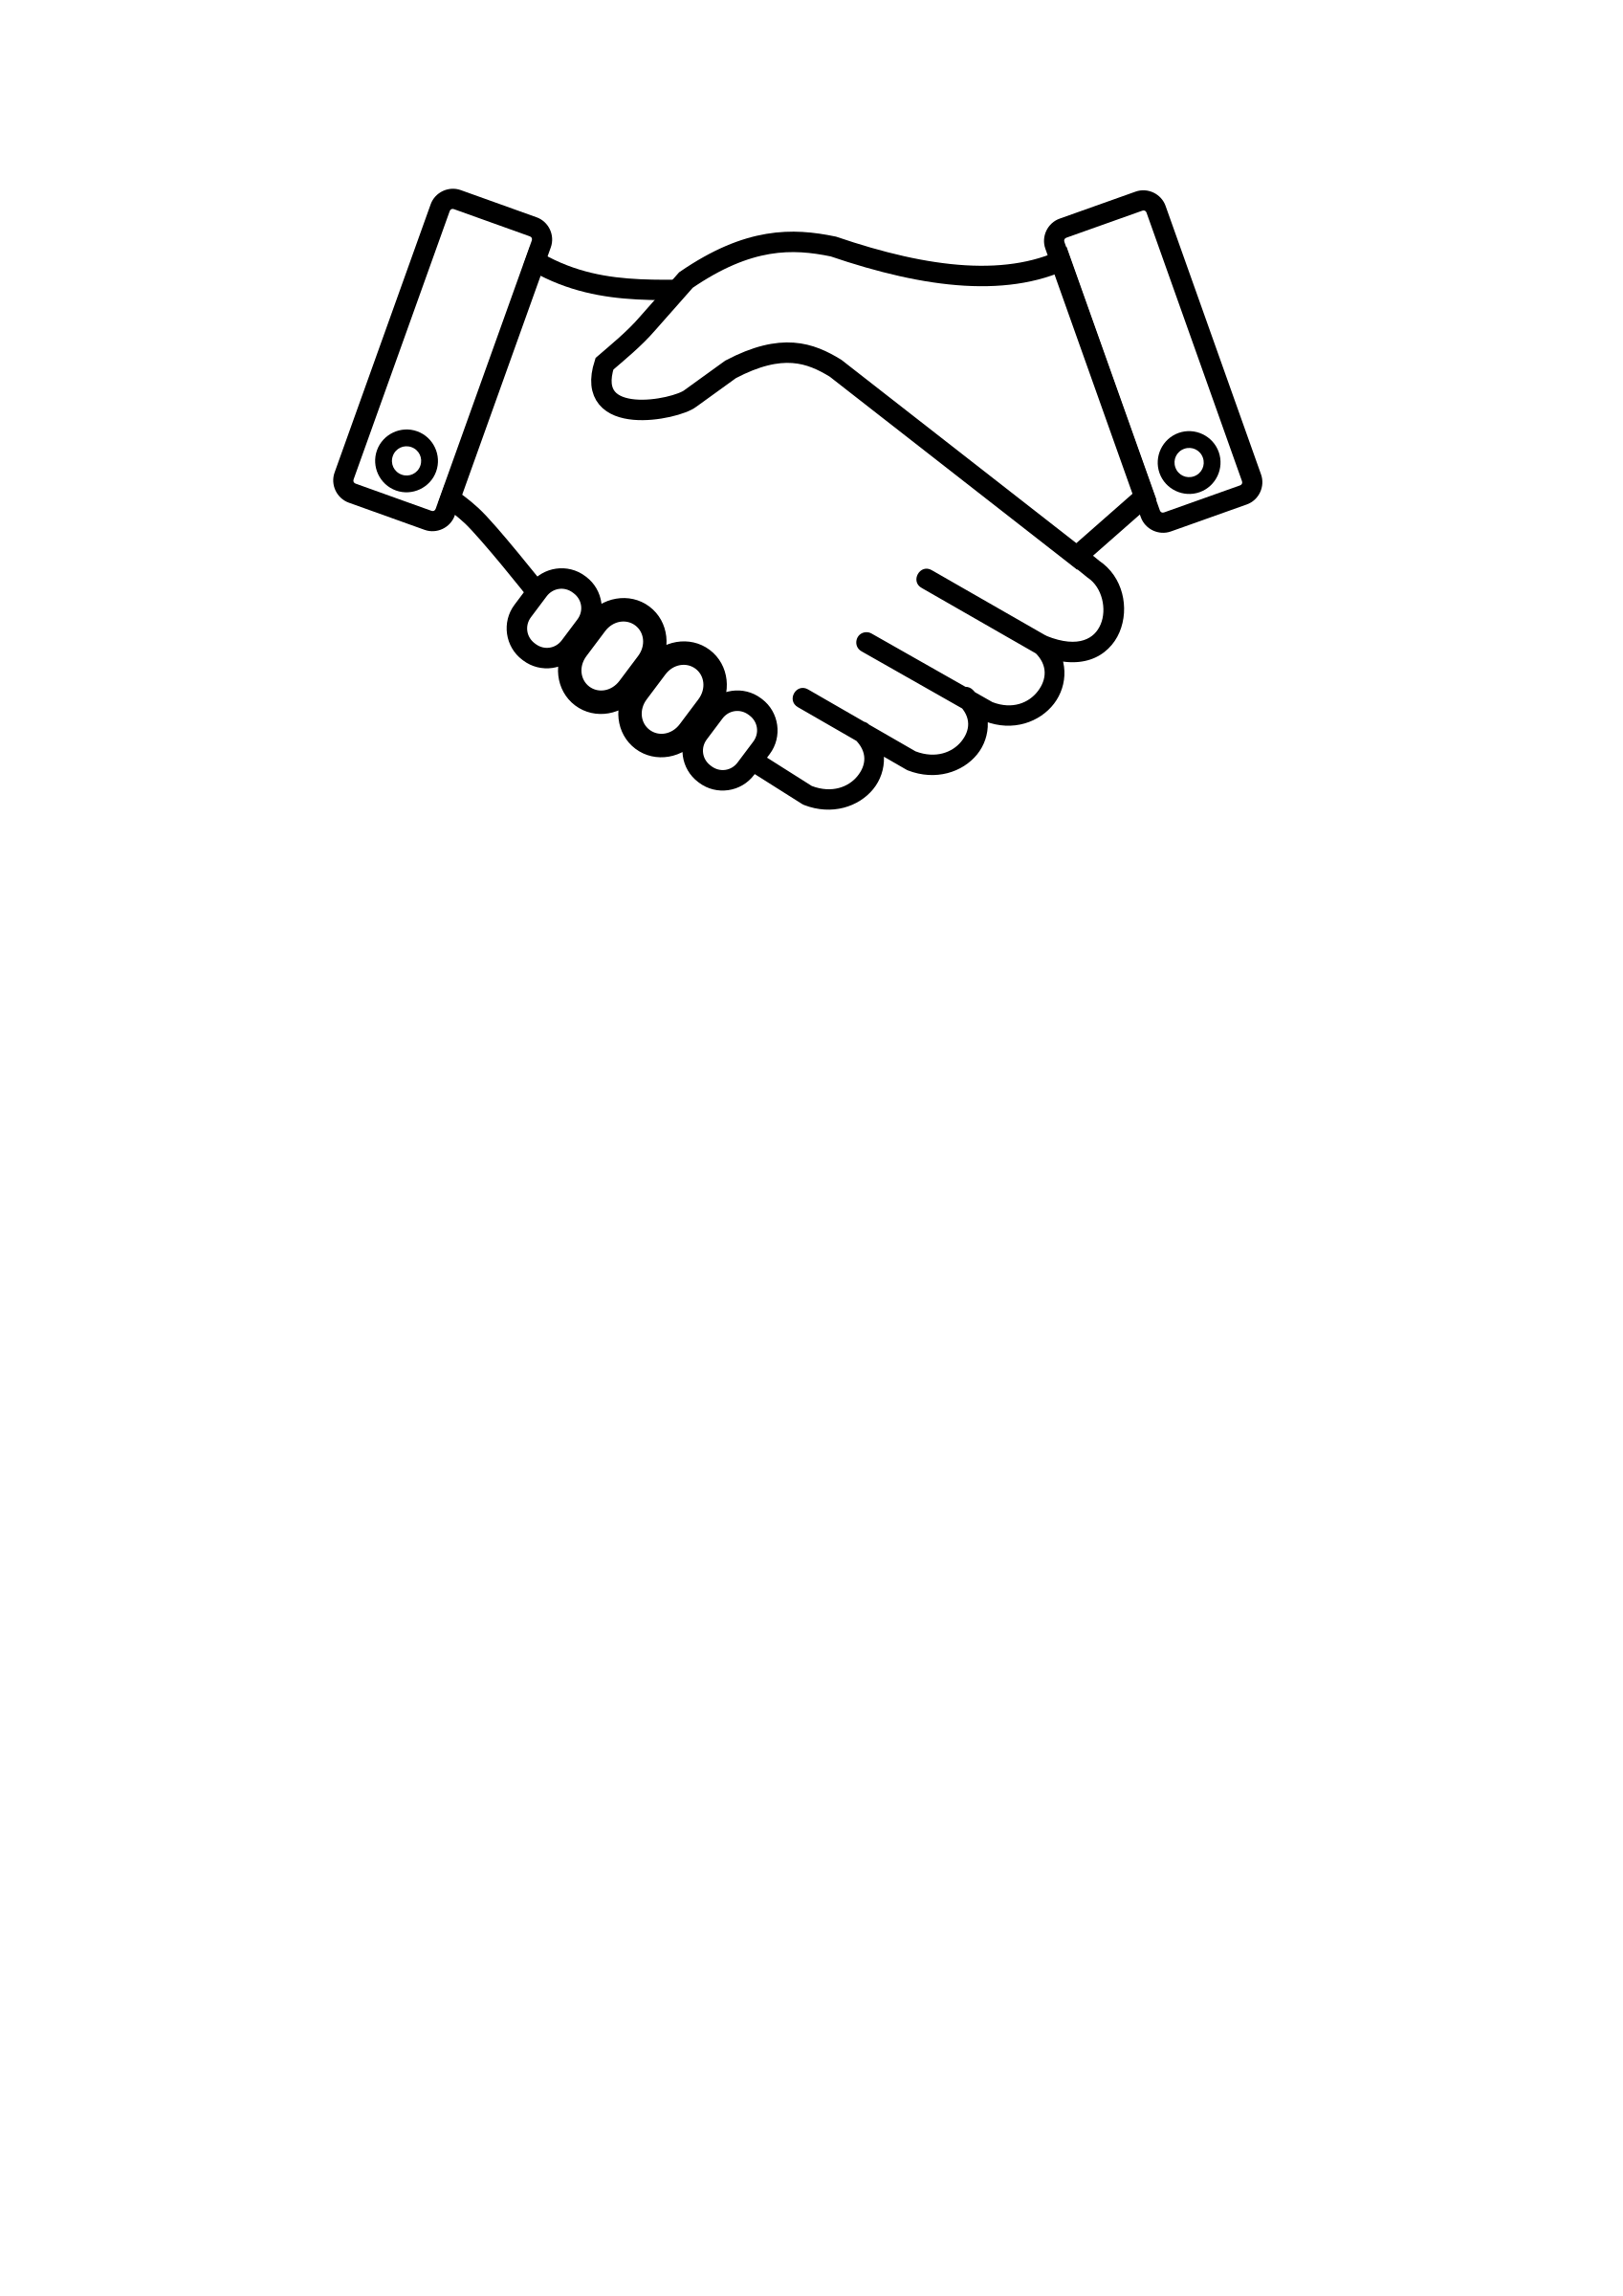 Handshake clipart support. Icons png free and